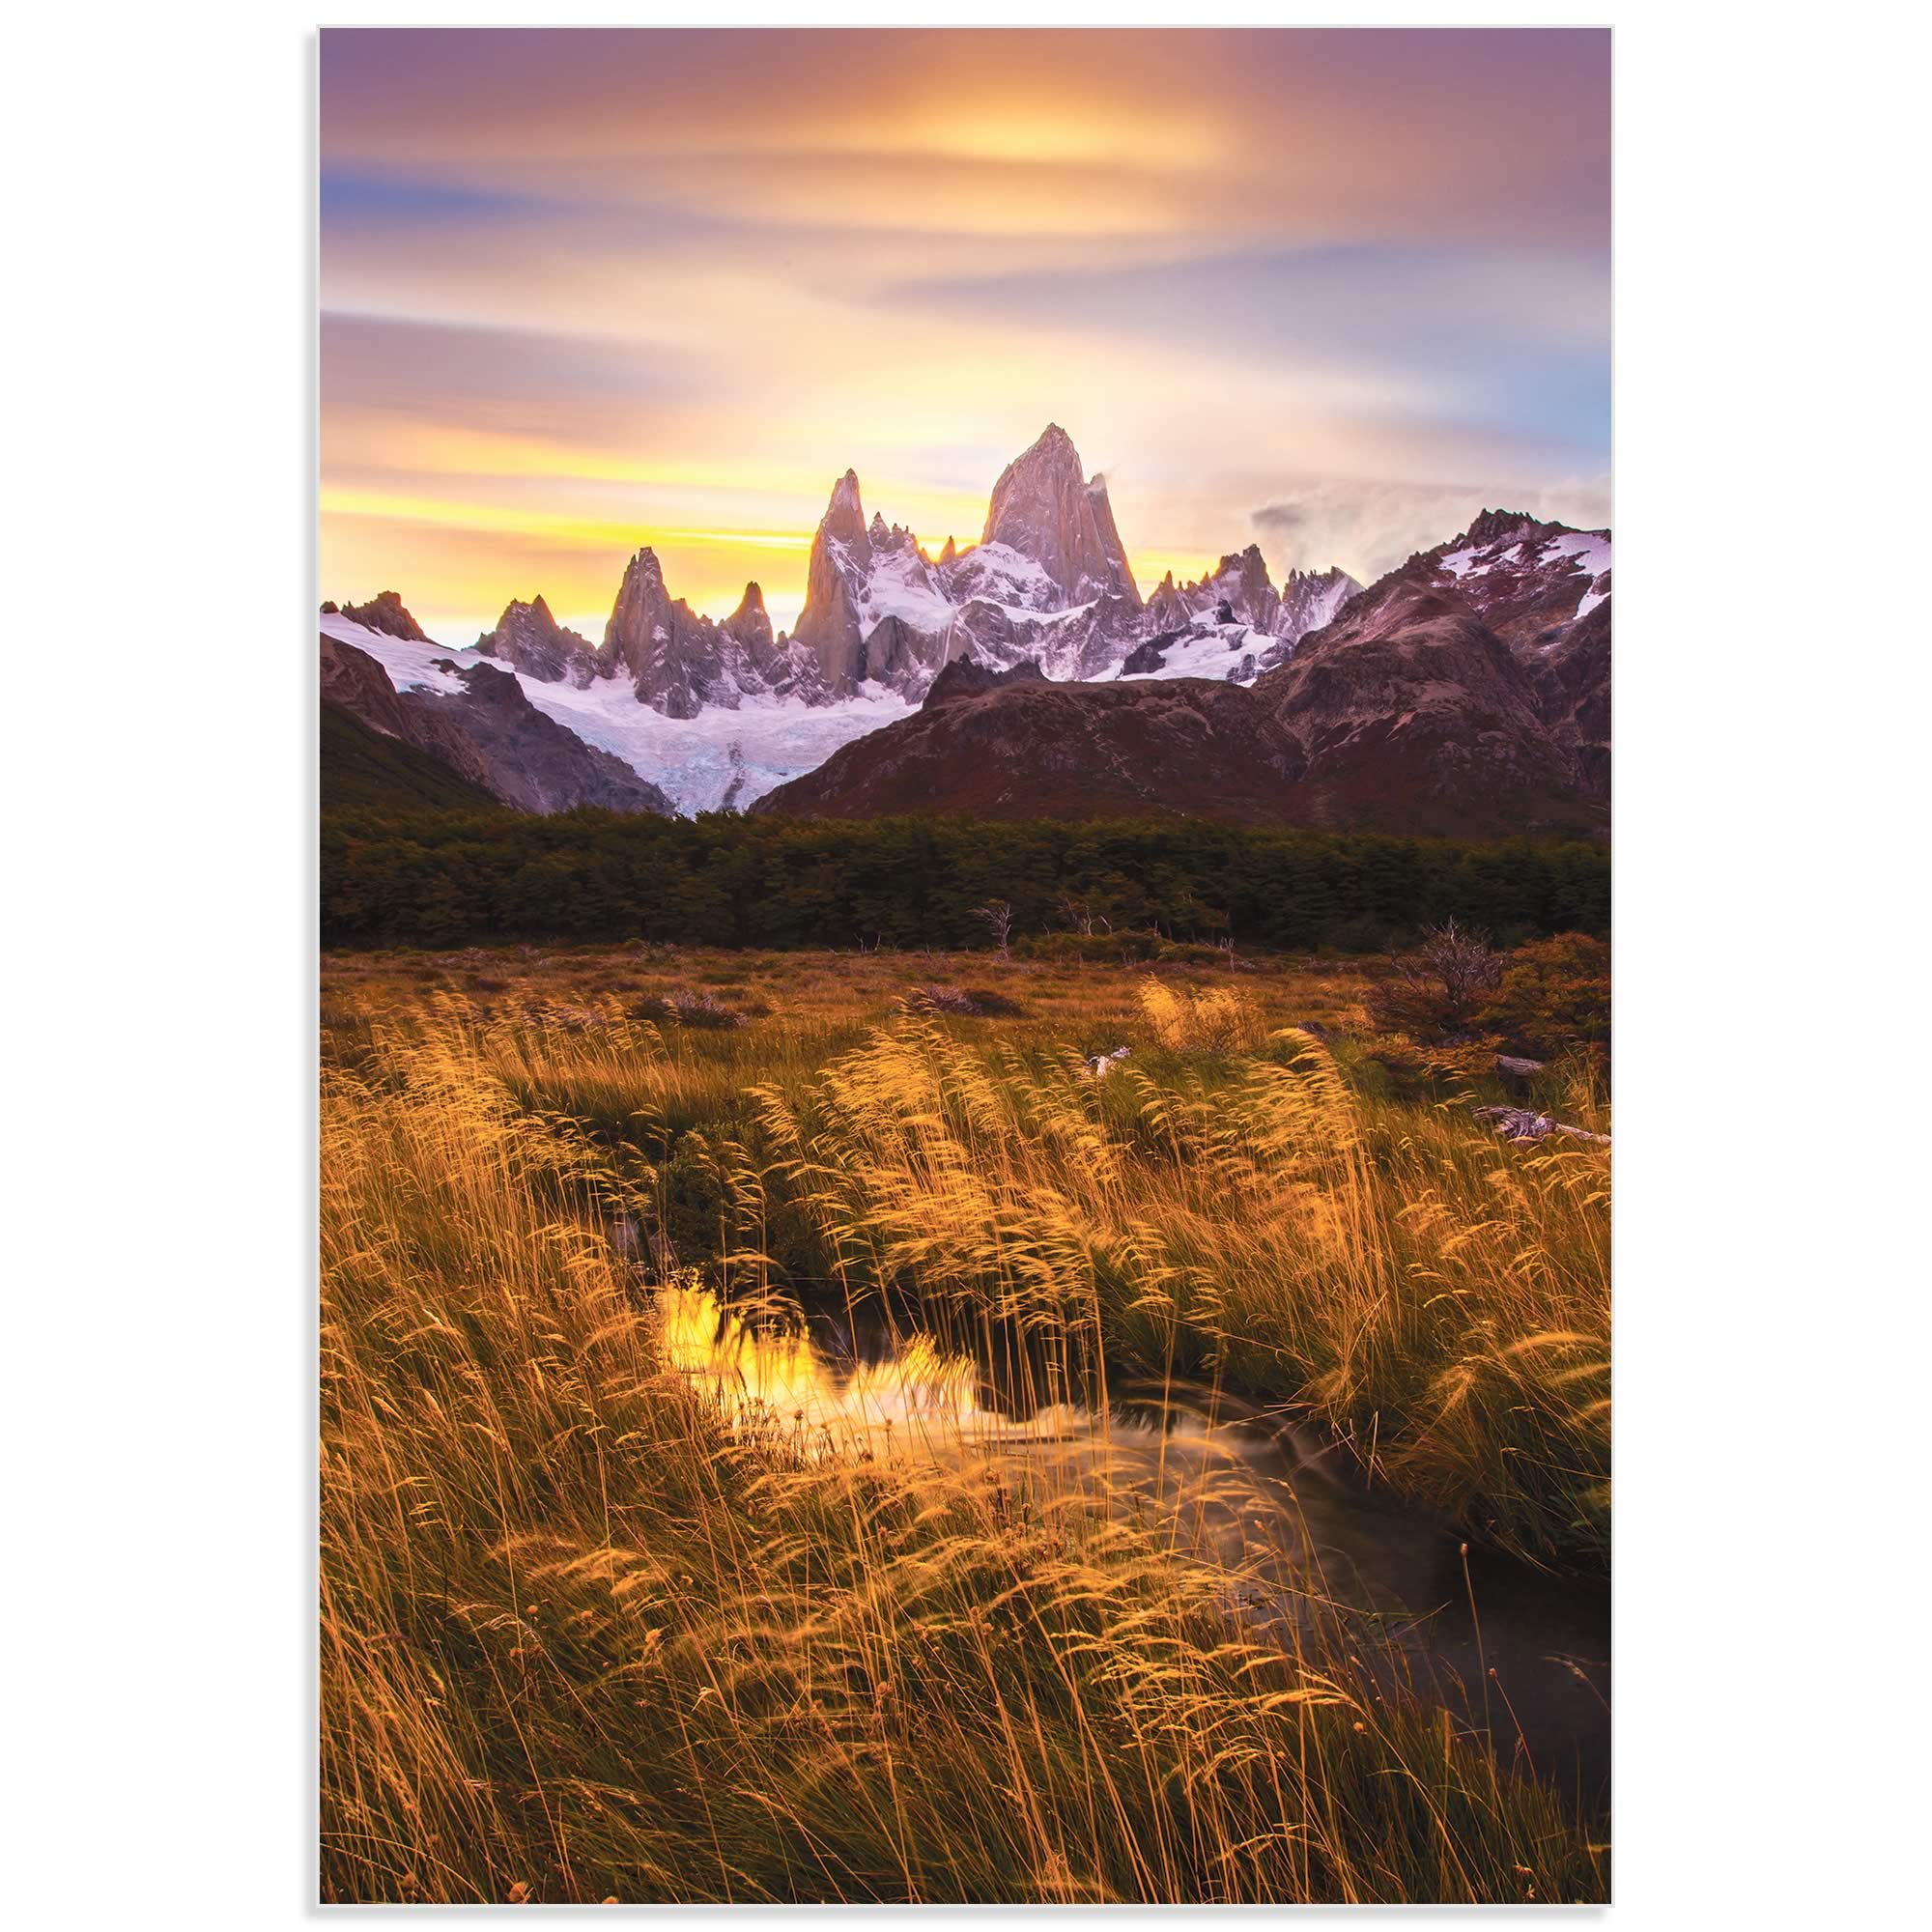 Fitz Roy at Golden Hour by Dianne Mao - Landscape Art on Metal or Acrylic - Alternate View 2